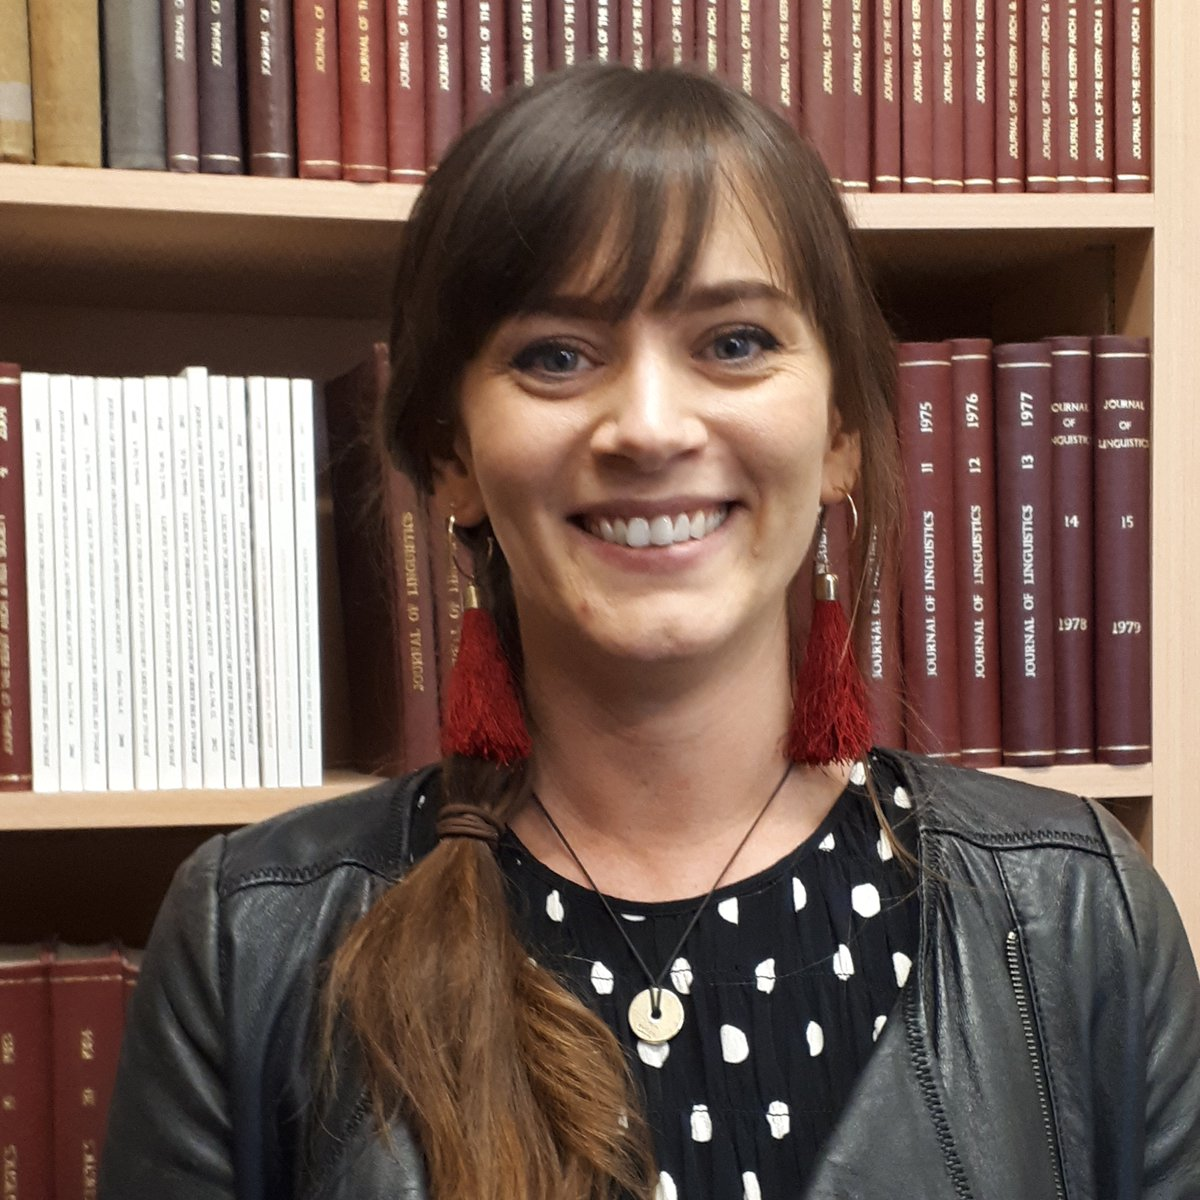 test Twitter Media - Congratulations to @CClearych   who has been awarded an O'Donovan Scholarship here @SCSLibrary @DIAS_Dublin  We look forward to working with Dr Cleary on her research projects over the coming years. #DIASdiscovers #CelticStudies #loveIrishresearch https://t.co/HdptTF5K9S